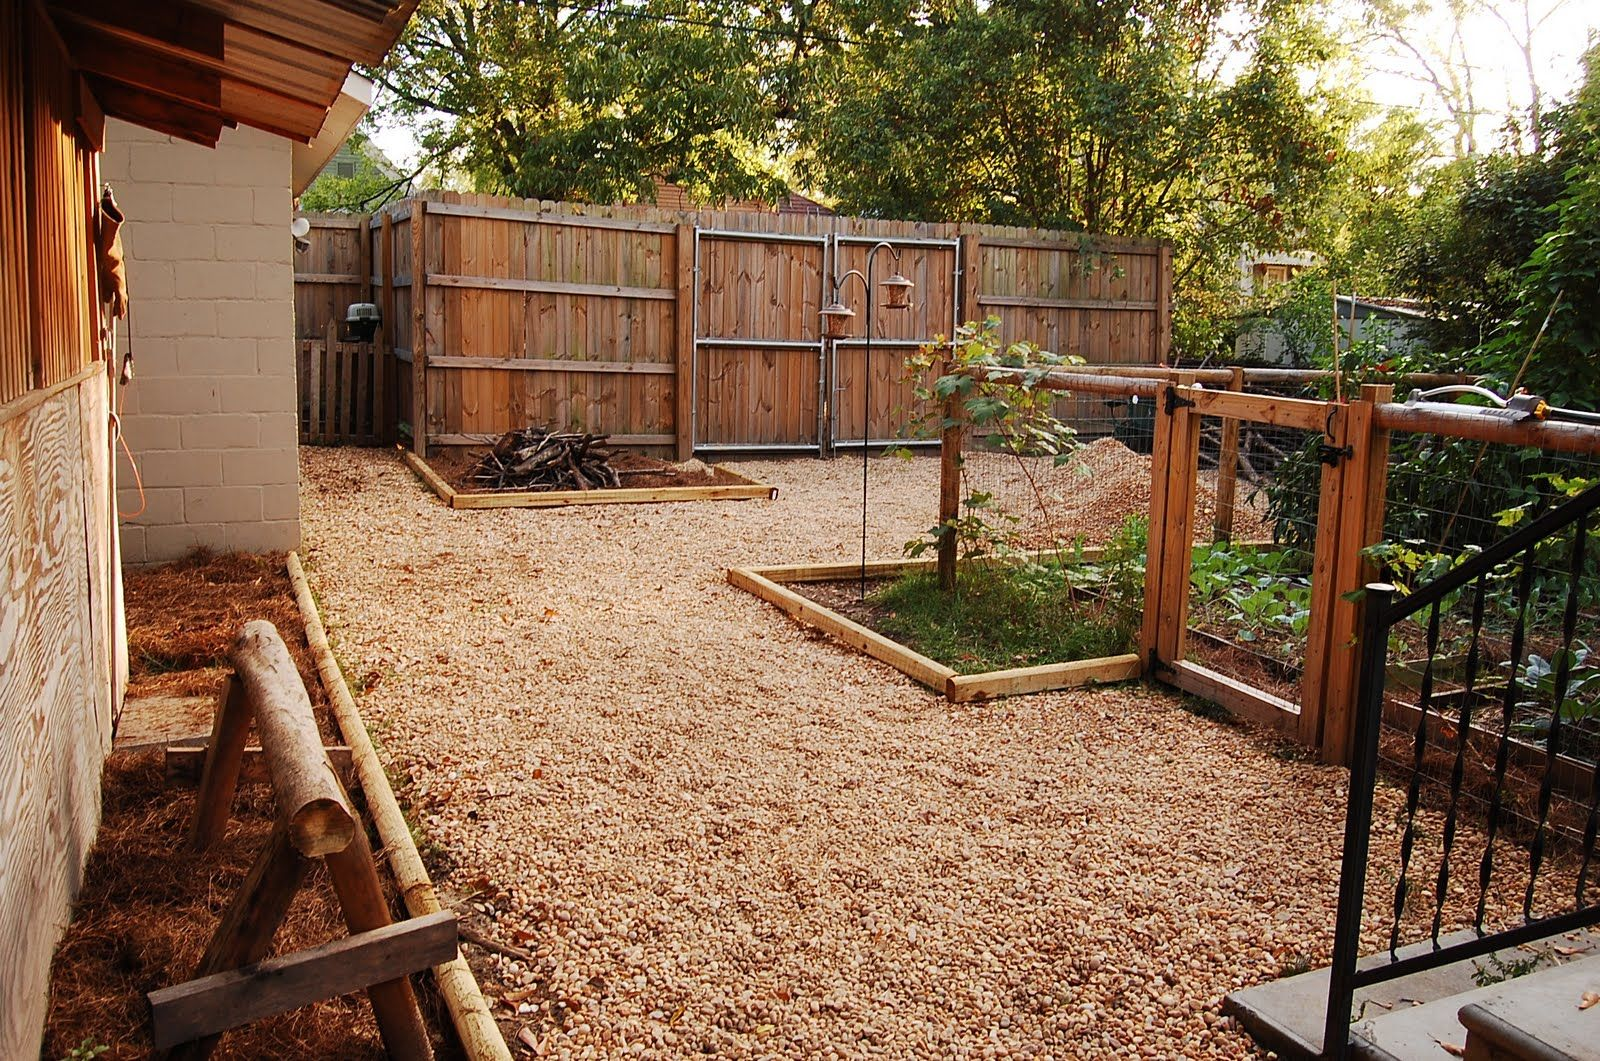 Backyard Desert Landscaping Ideas On A Budget - thorplc ... on Backyard Desert Landscaping Ideas On A Budget  id=96740